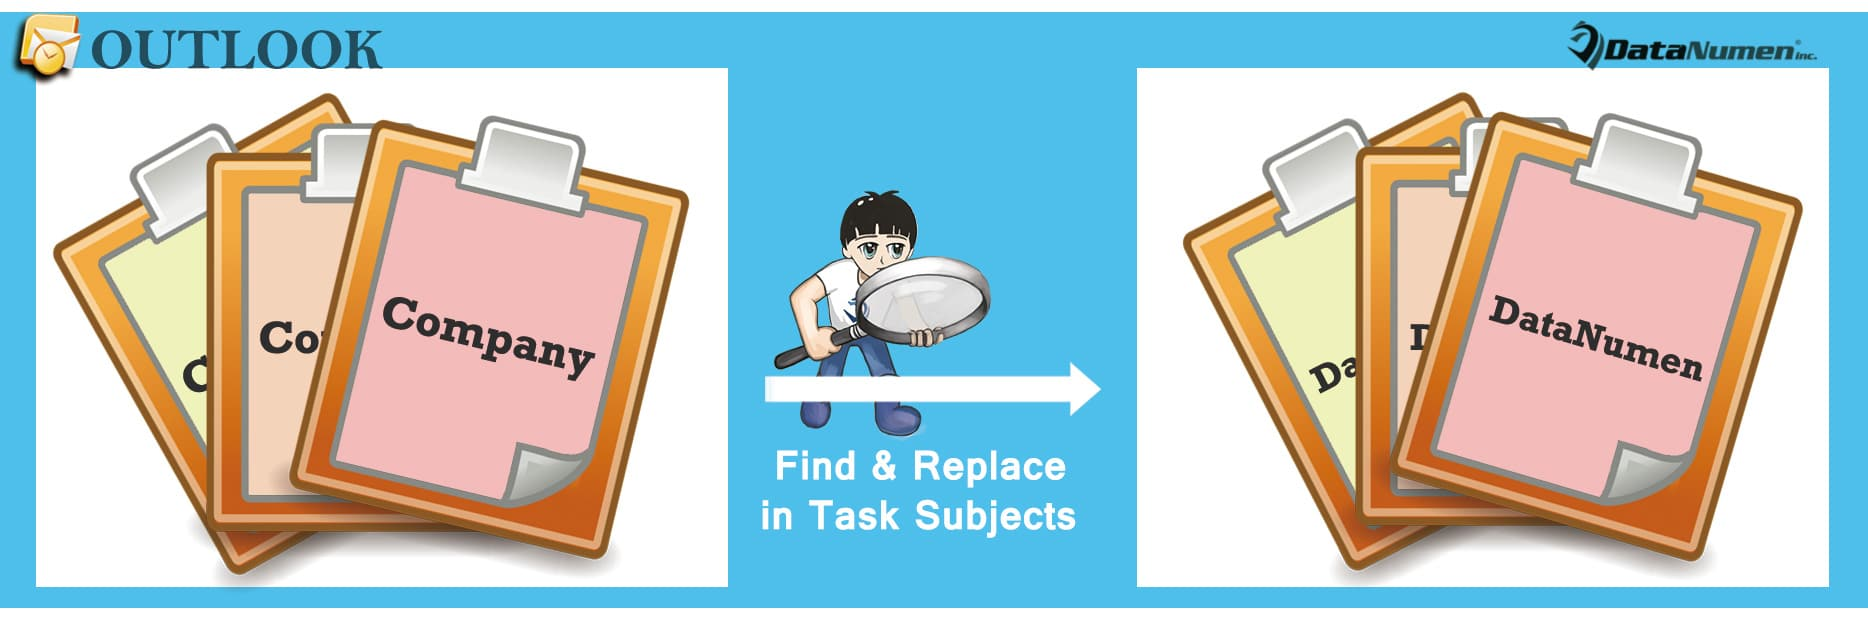 All The Tasks how to batch find & replace text in all tasks' subjects in